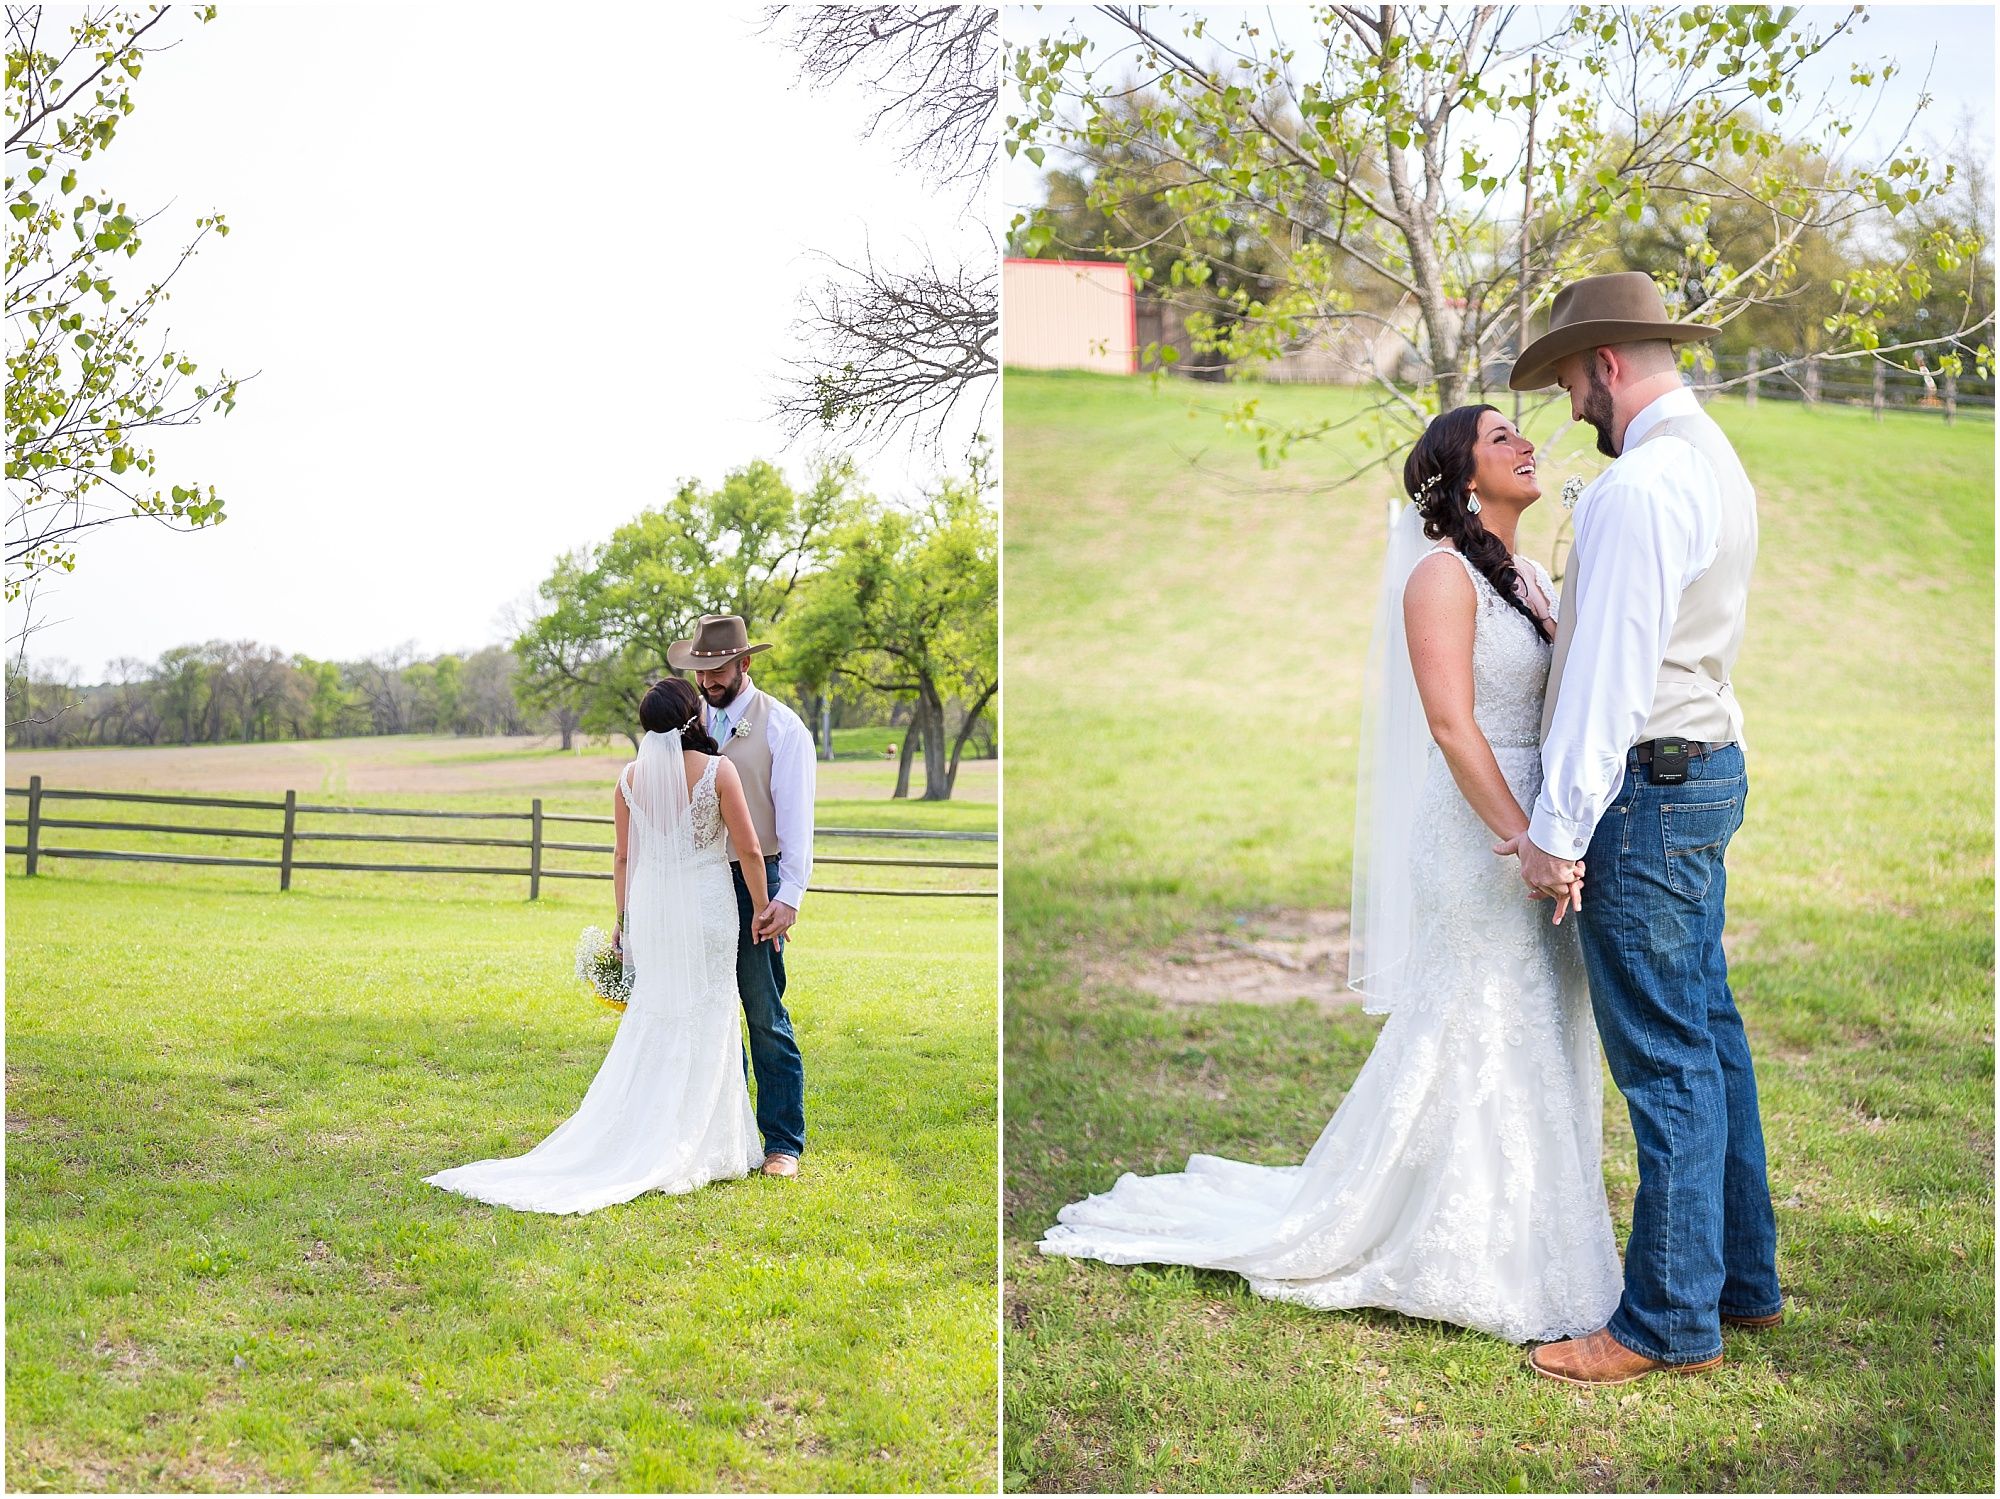 Bride and groom embrace in a green pasture at Peacock River Ranch - Jason & Melaina Photography